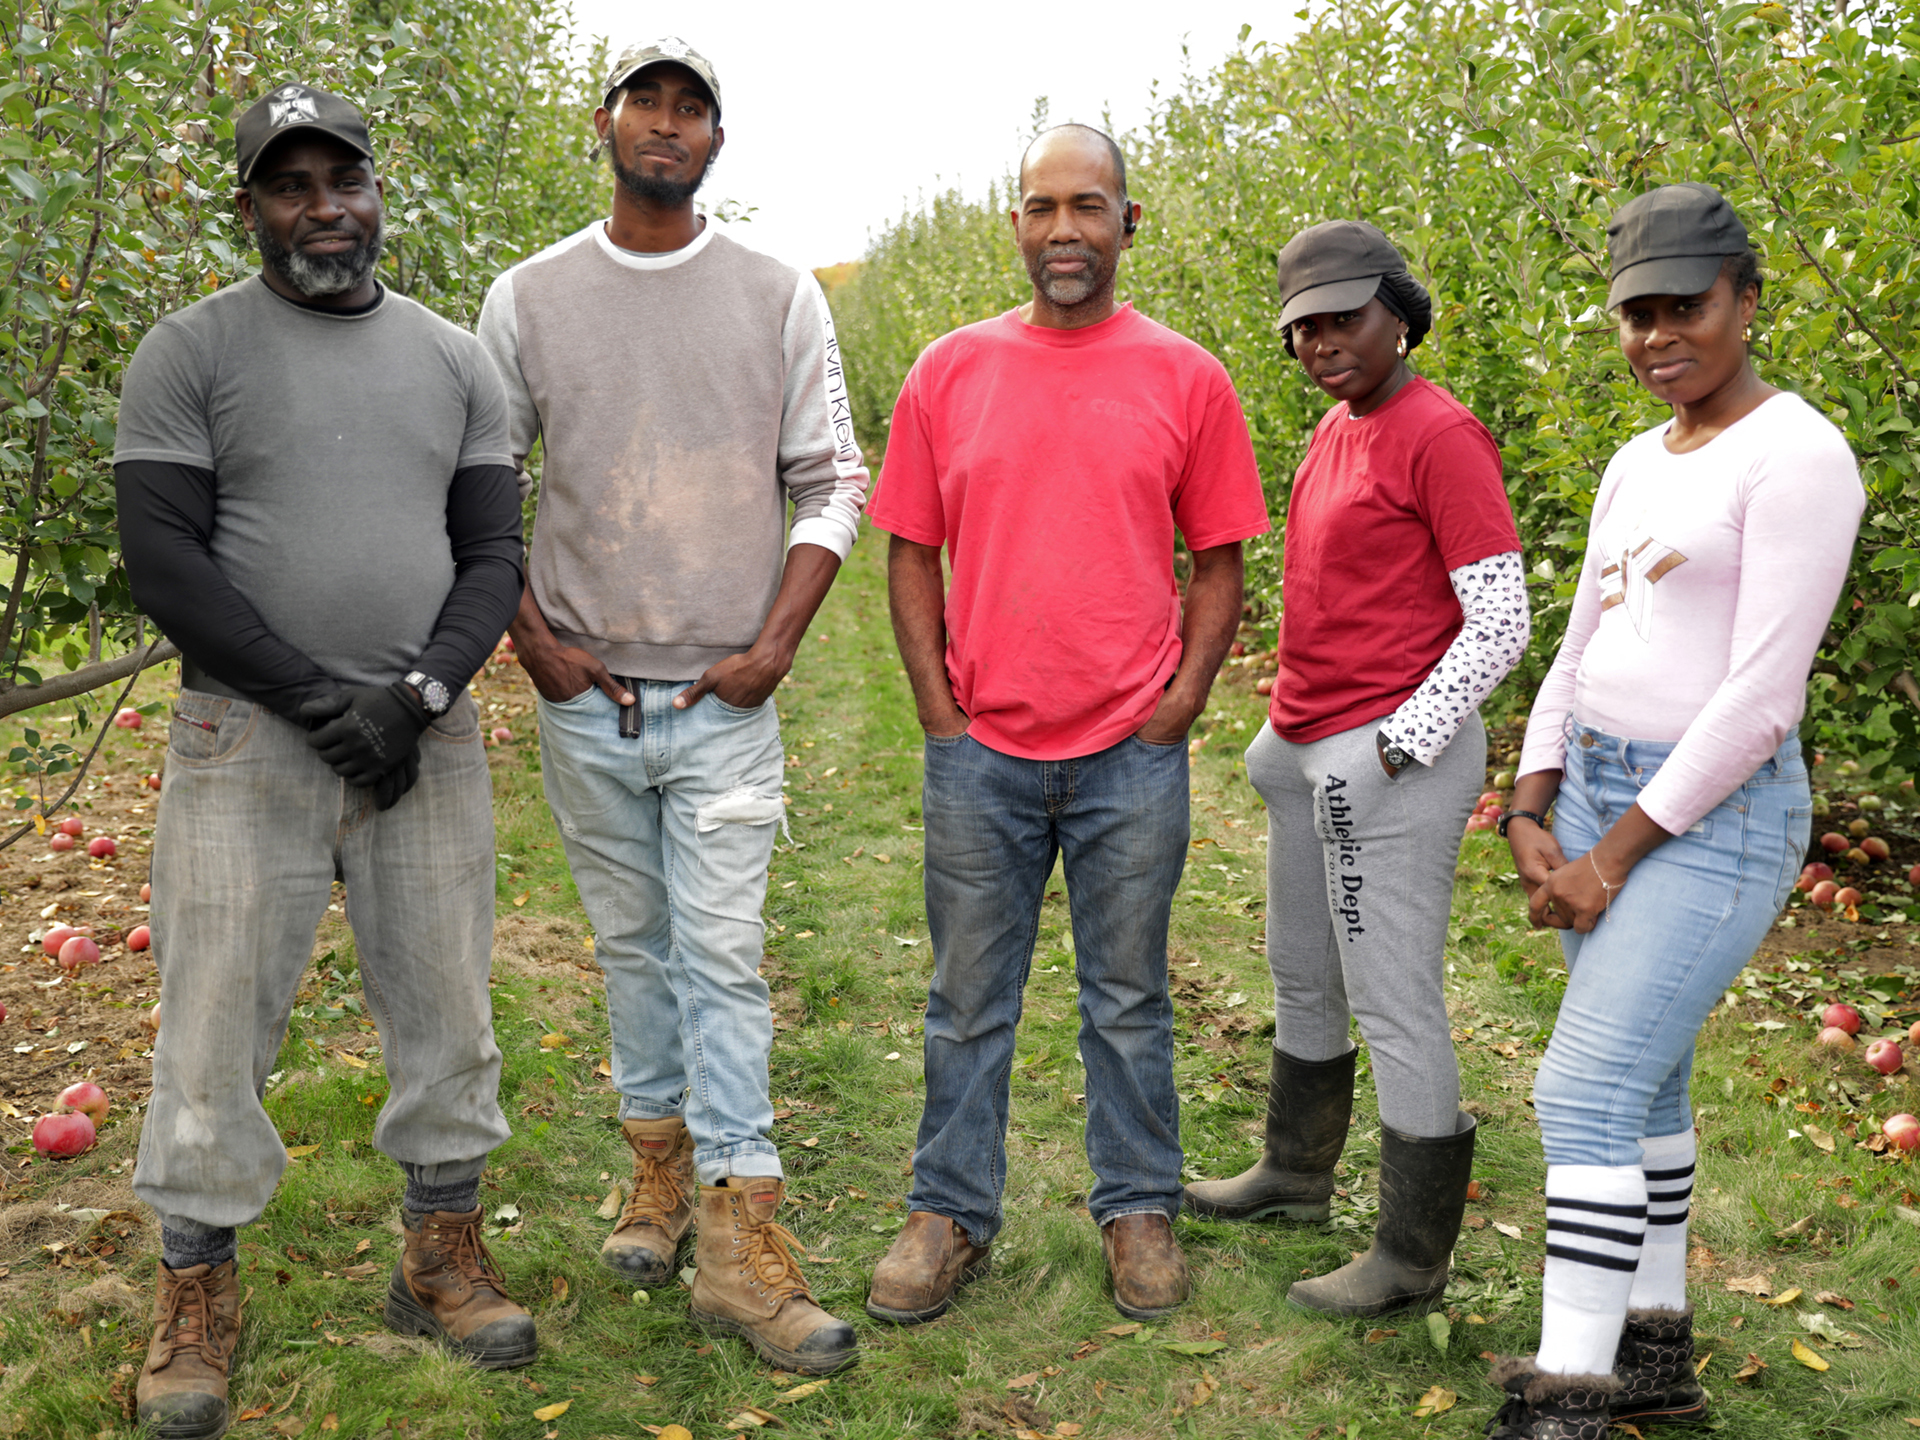 Felix Ragoo (centre) has been coming to work at Schuyler Farms for 21 seasons on temporary work permits. His brother-in-law Kerwin Anderson, far left, and son Deon Ragoo as well as daughters Shelly Ragoo,far right, and Sheerine King are with him this year. (Virginia Smart/CBC)